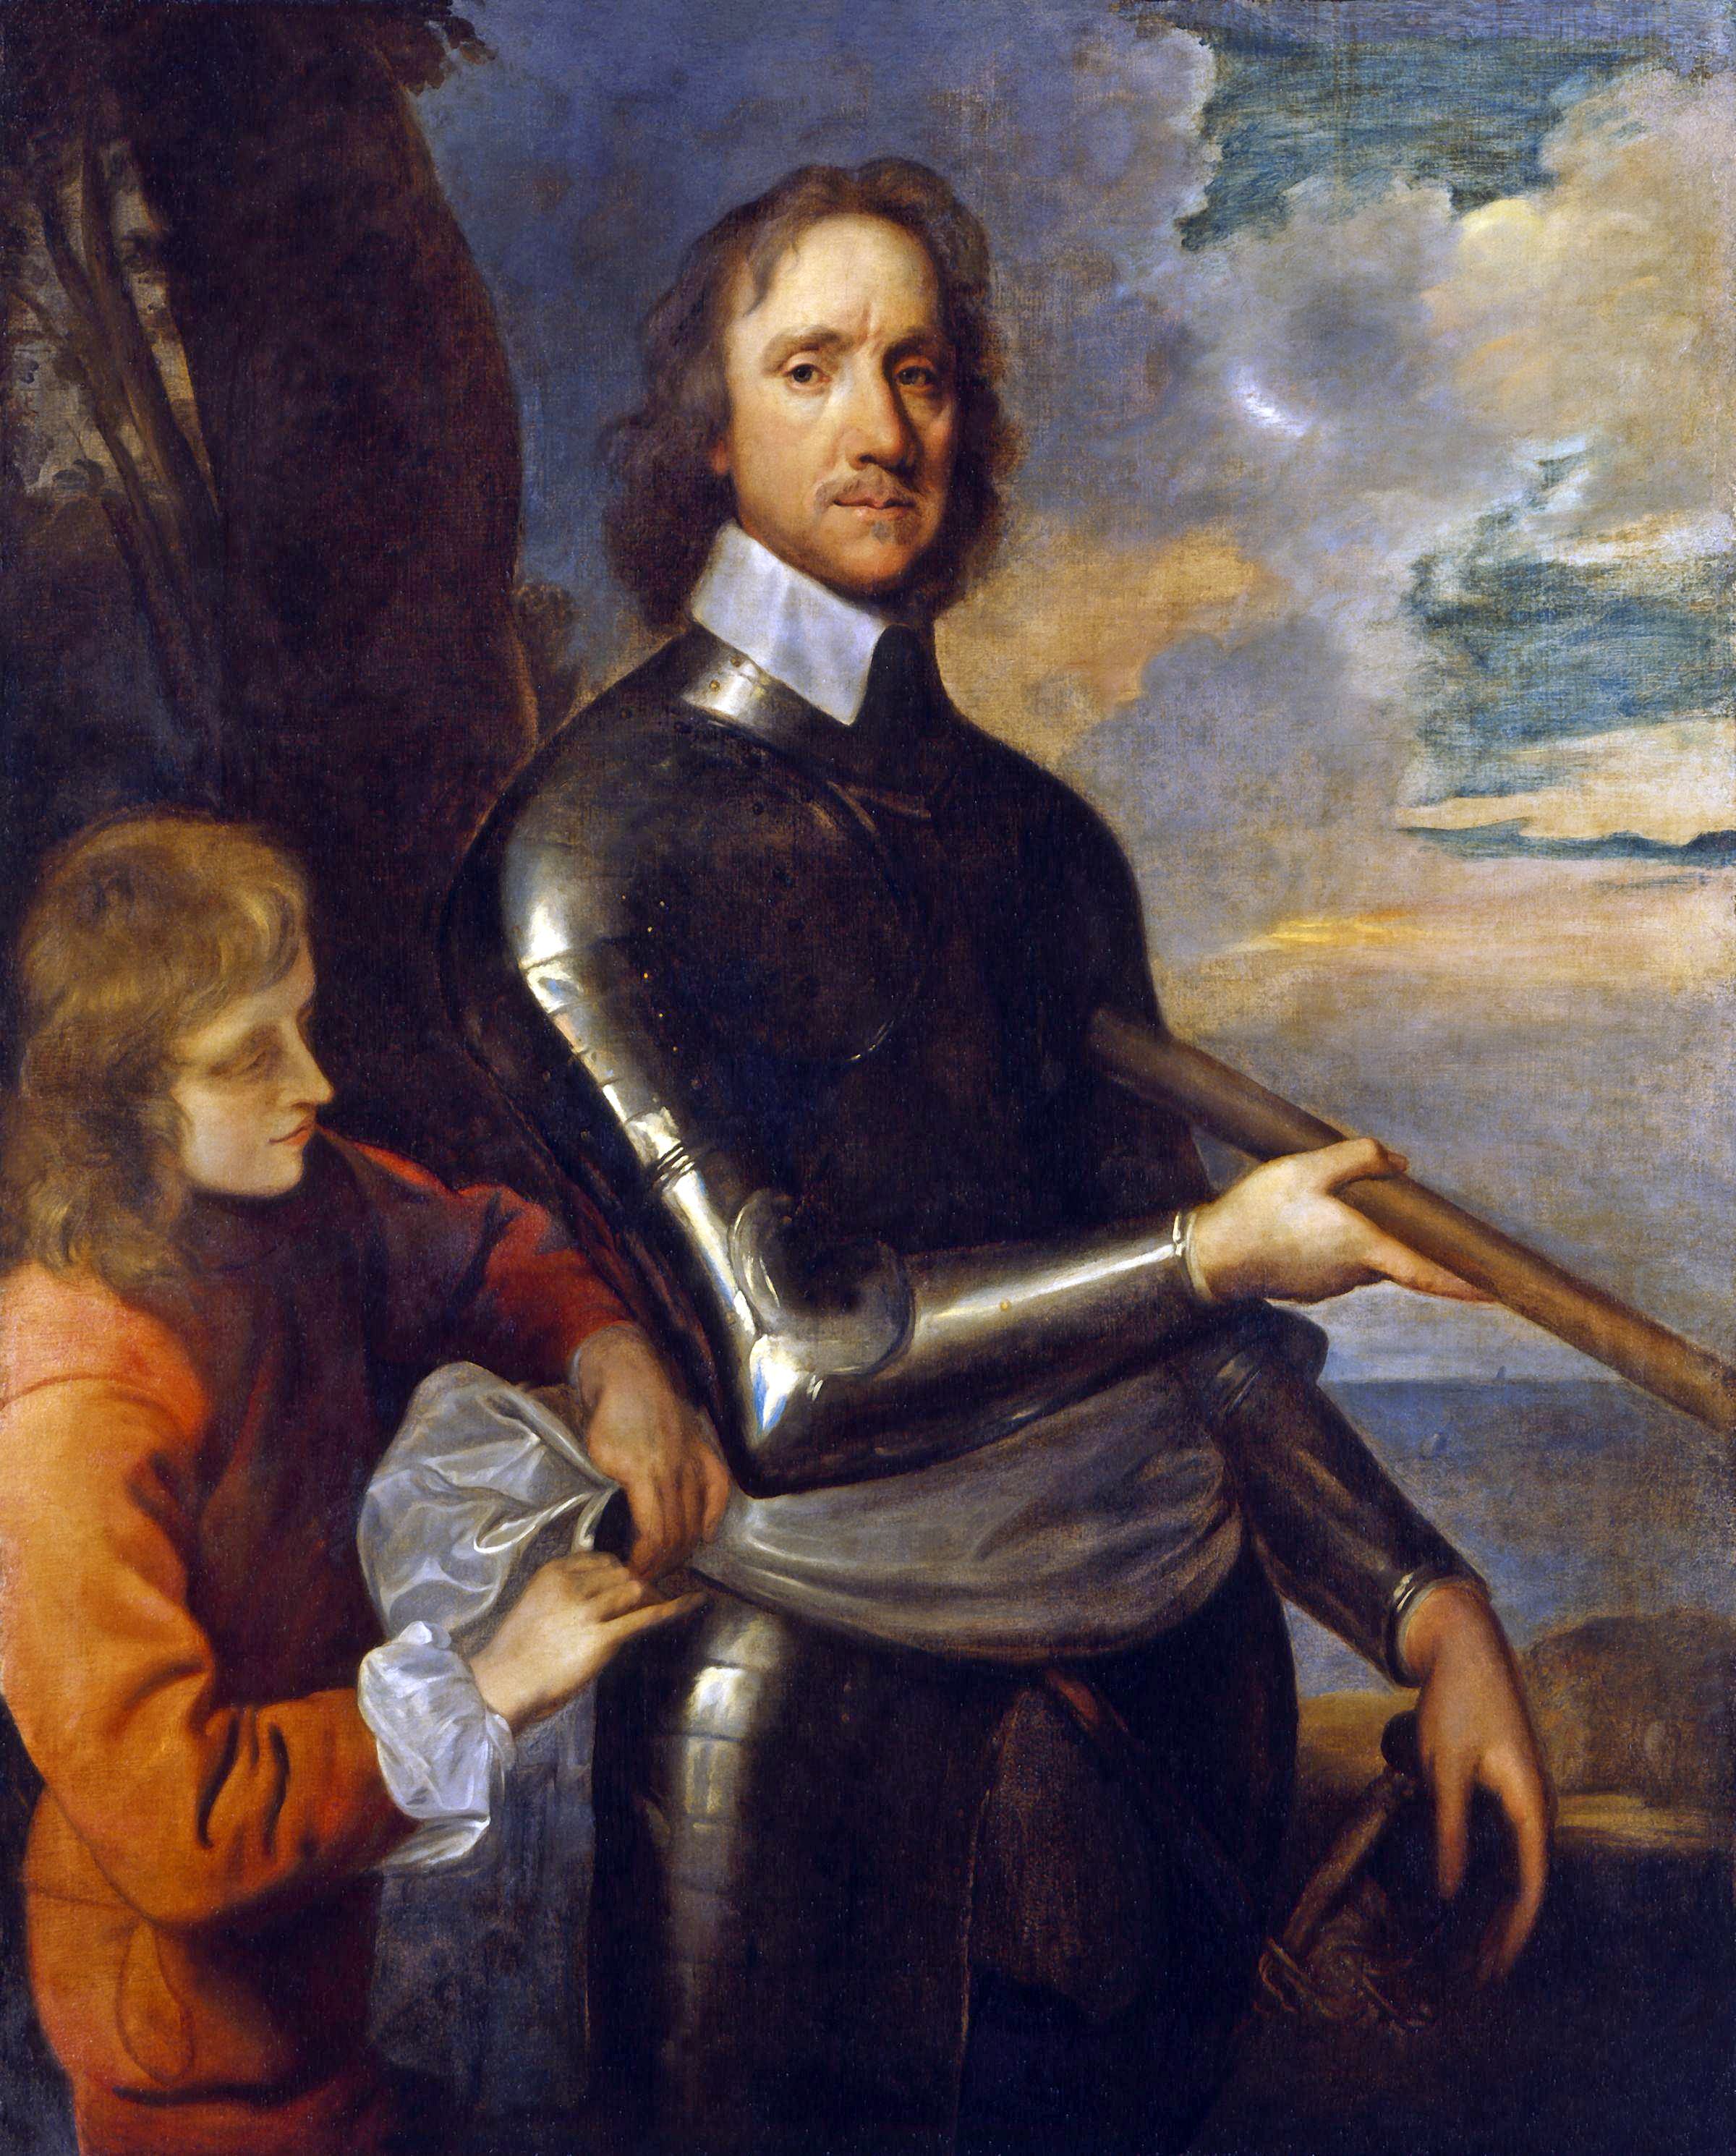 life of oliver cromwell as the lord protector of the commonwealth of england scotland and ireland The life of oliver cromwel, lord protector of the common-wealth of england, scotland, and ireland being an account of all the battles  cromwell, oliver.